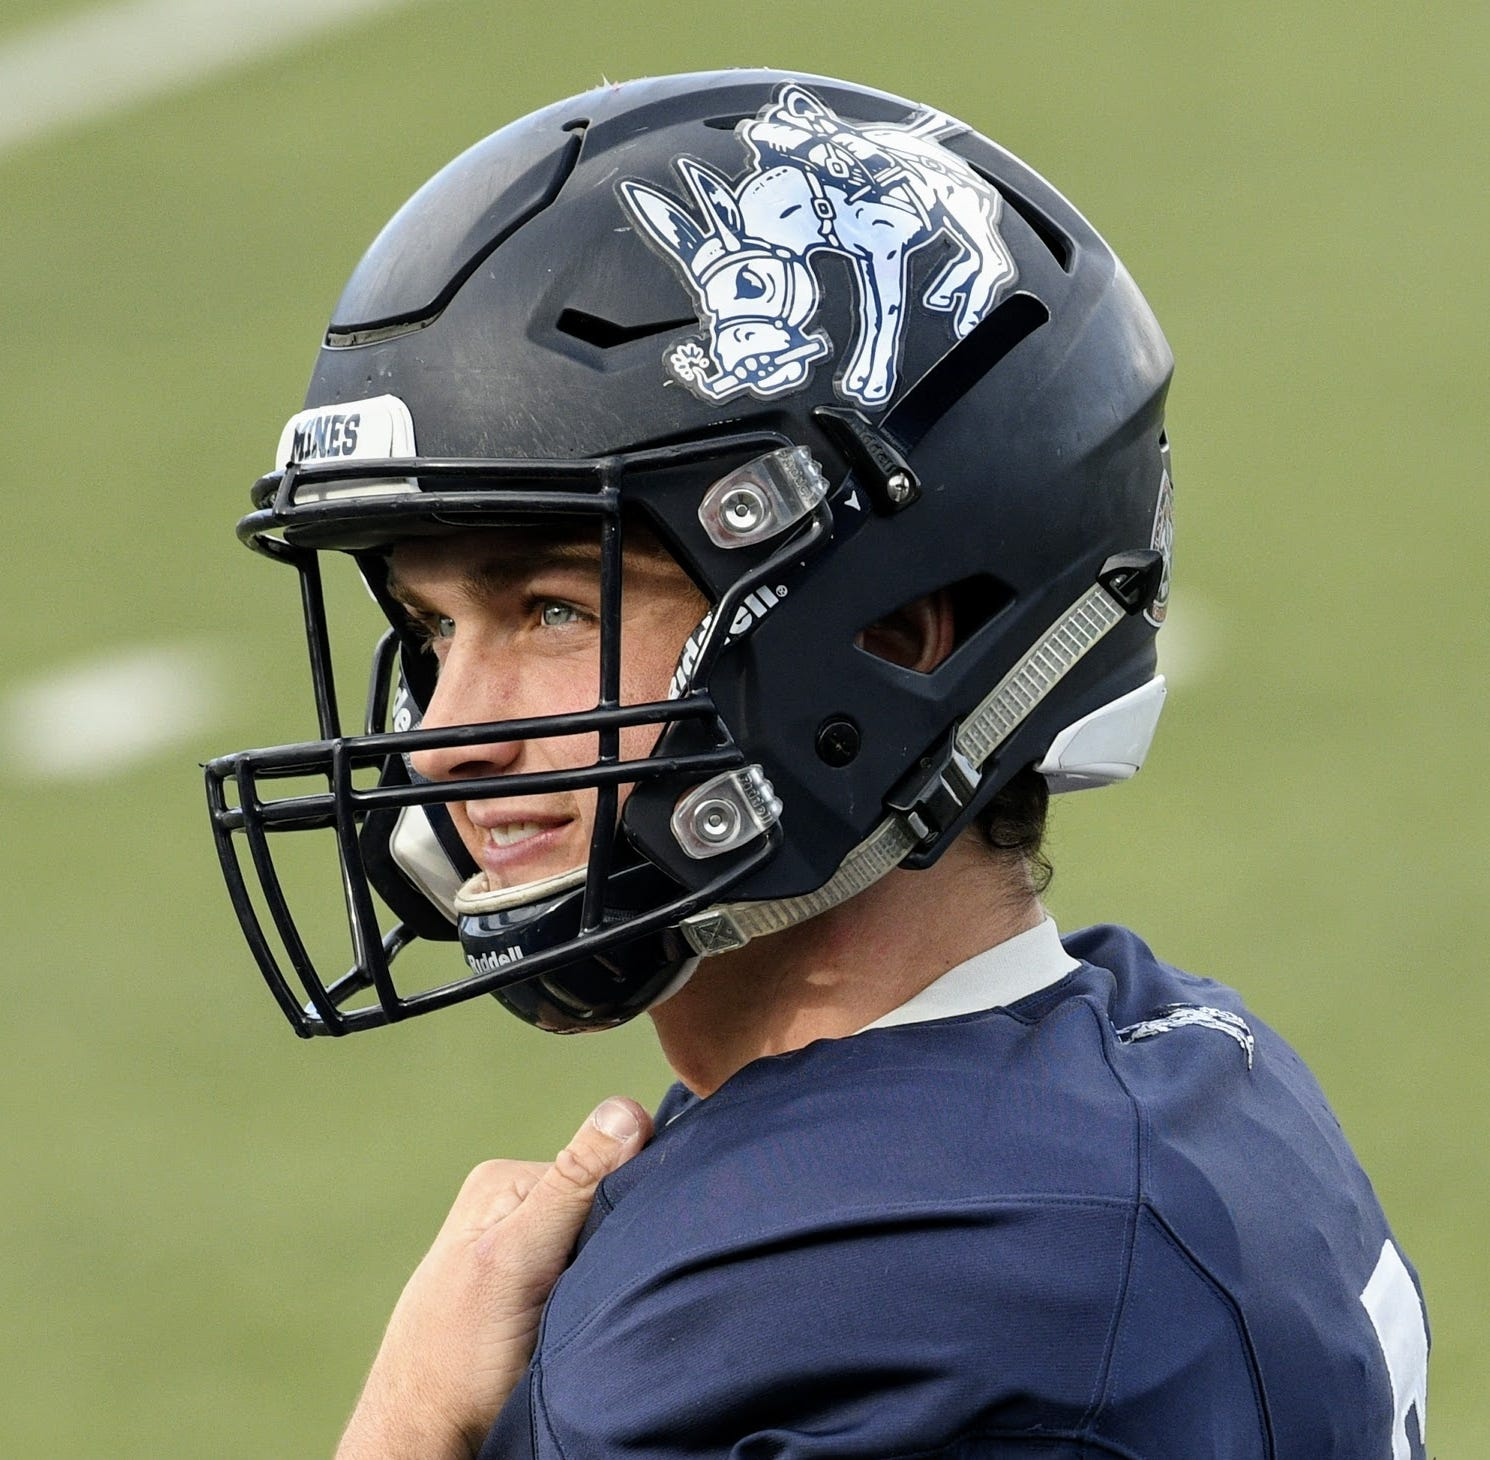 The pro prospect out of nowhere: Unearthing potential of ex-Lebanon QB, valedictorian Isaac Harker